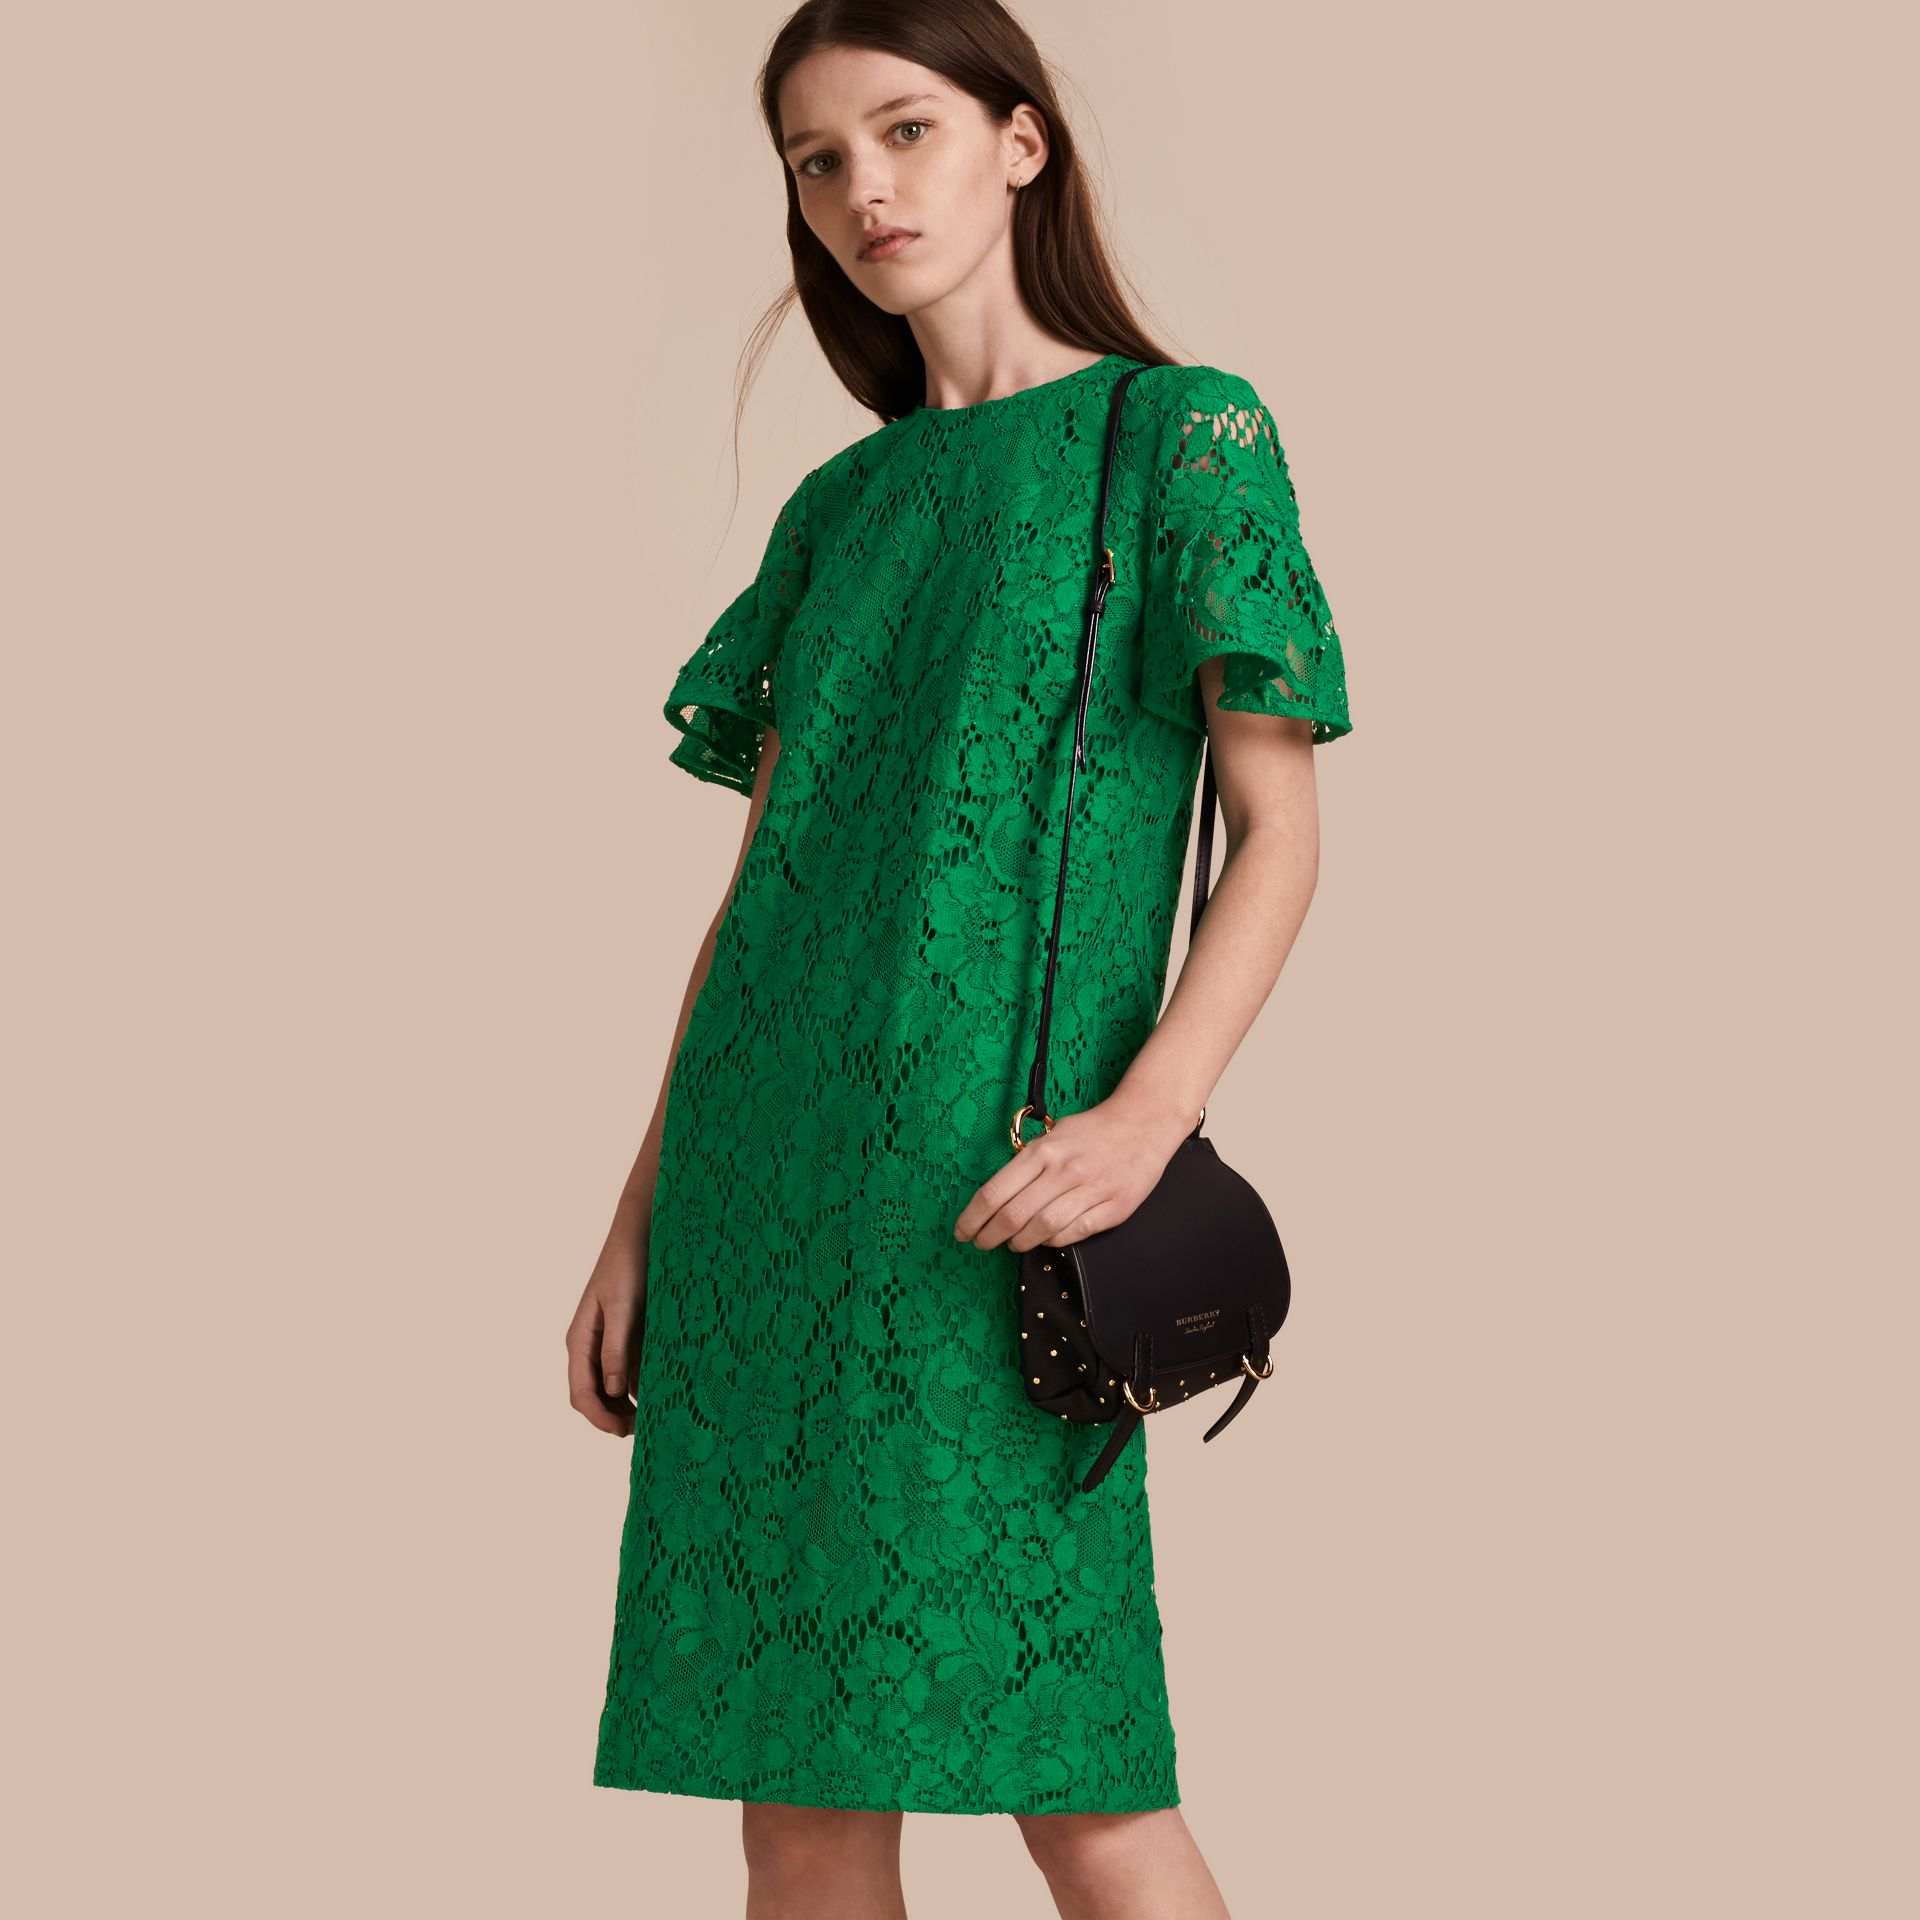 Macramé Lace Shift Dress with Ruffle Sleeves Kelly Green - gallery image 1